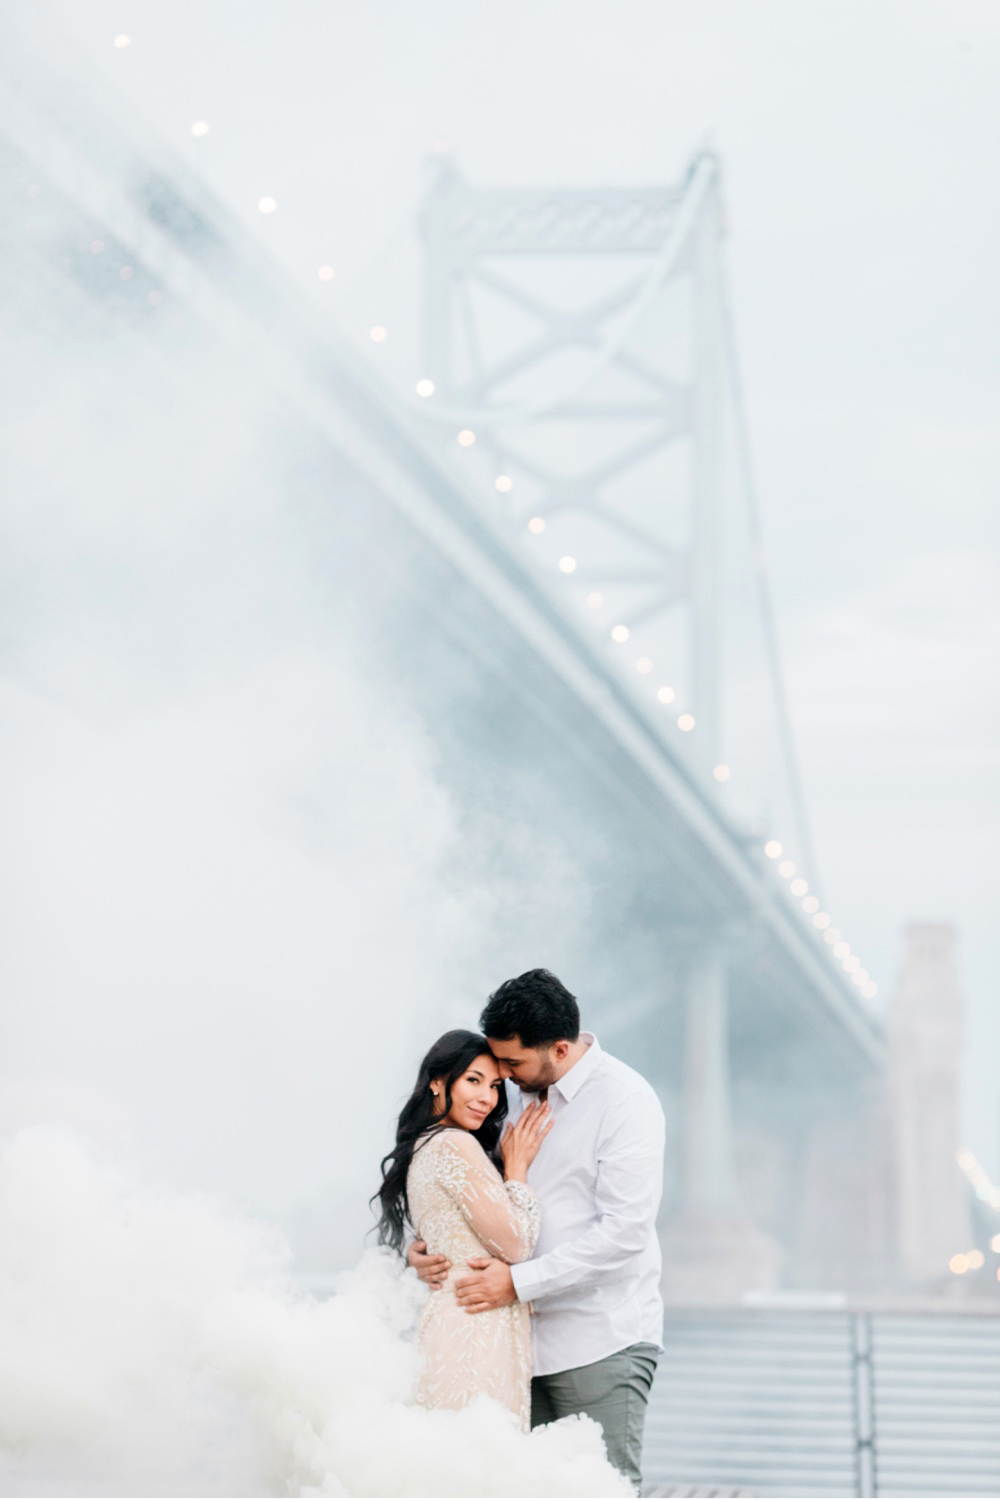 38 Milanee&Amine 201 Philadelphia Engagement Philadelphia Wedding Photographer Fine Art Wedding Photographer Light And Airy